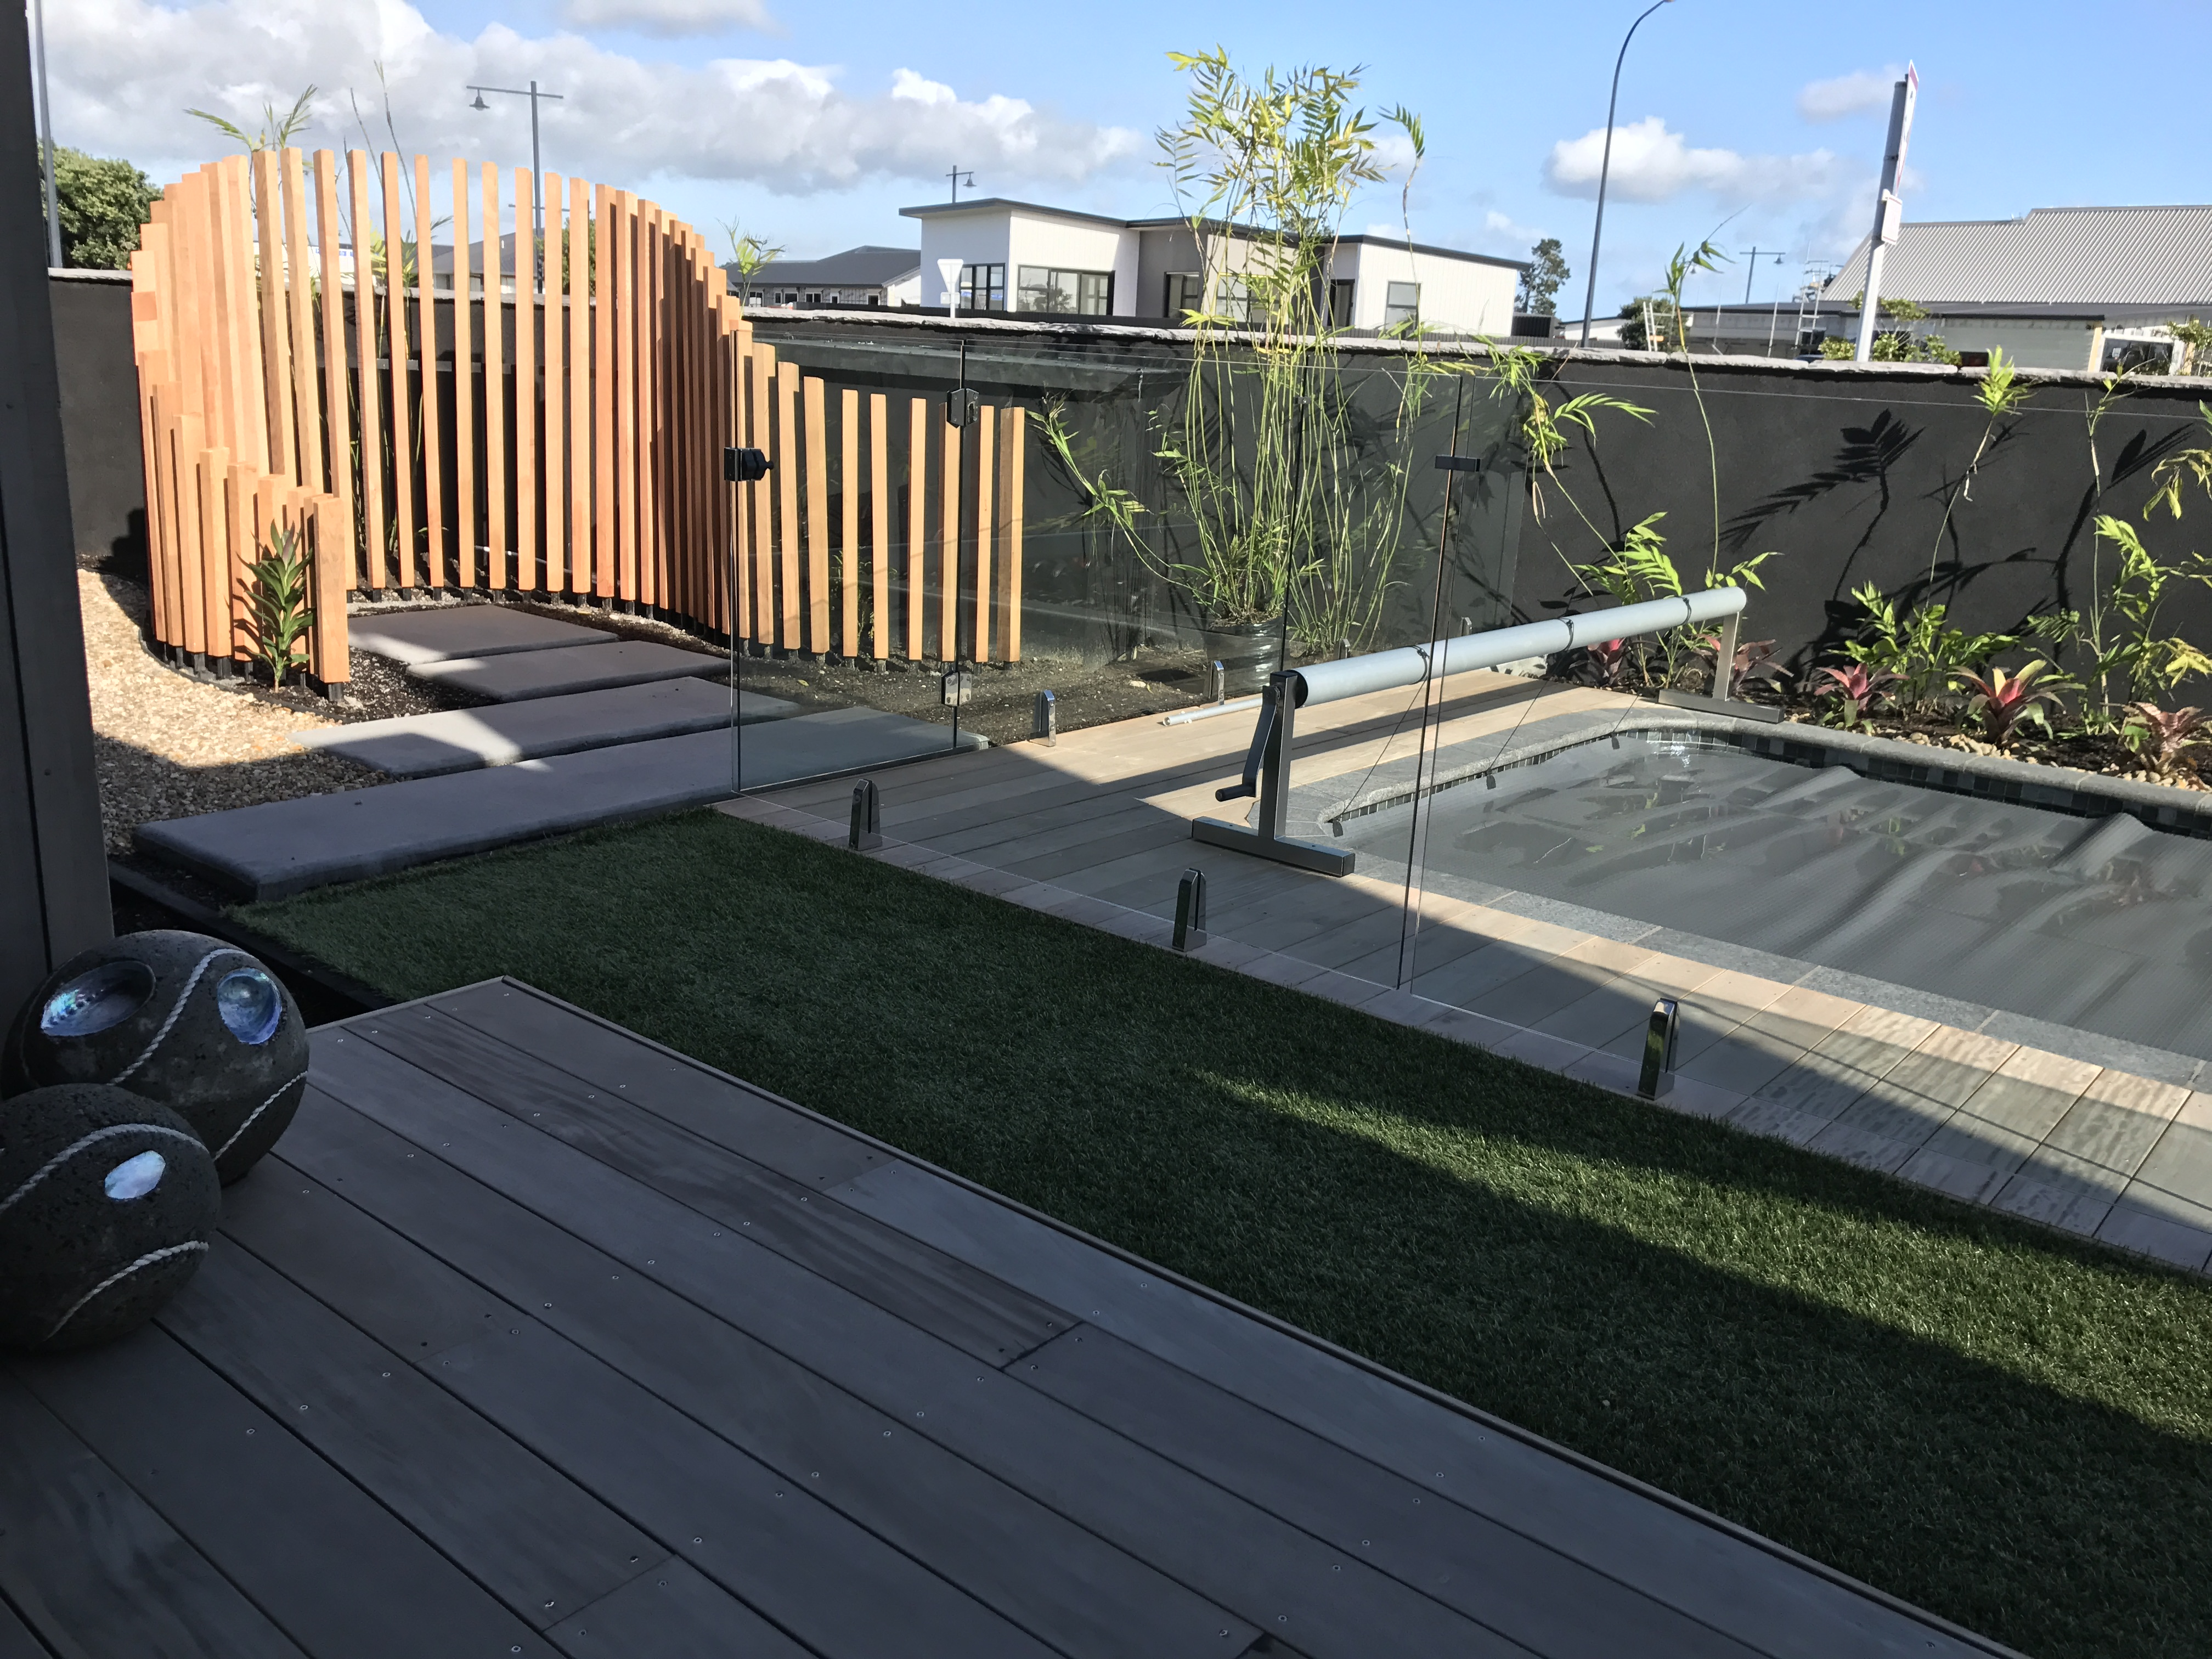 Outdoor shower, Screening, Glass balustrade, Swimming pool, deck, planting